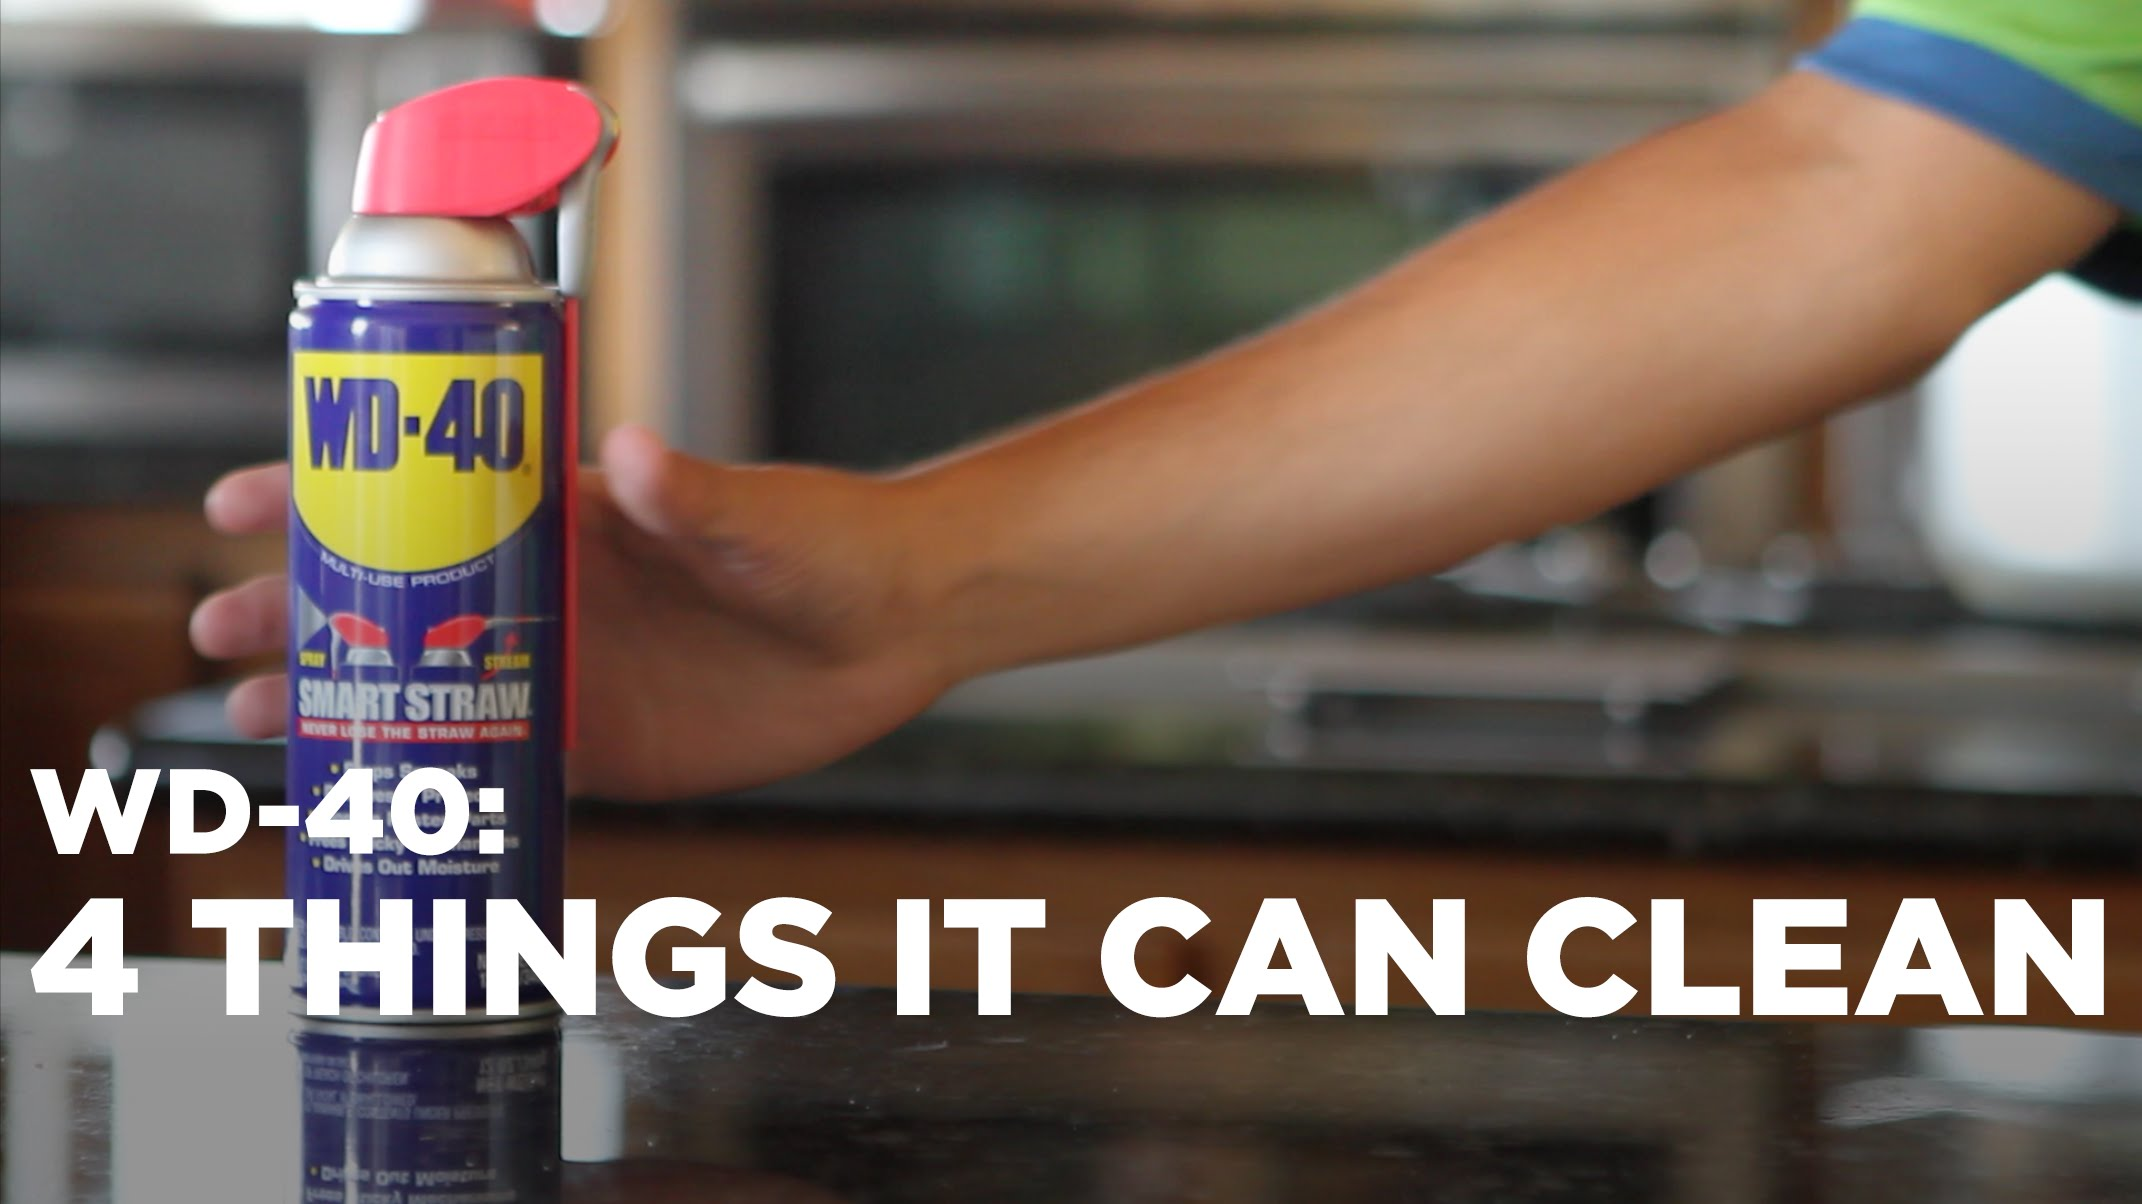 Meet your cleaning new best friend, WD-40